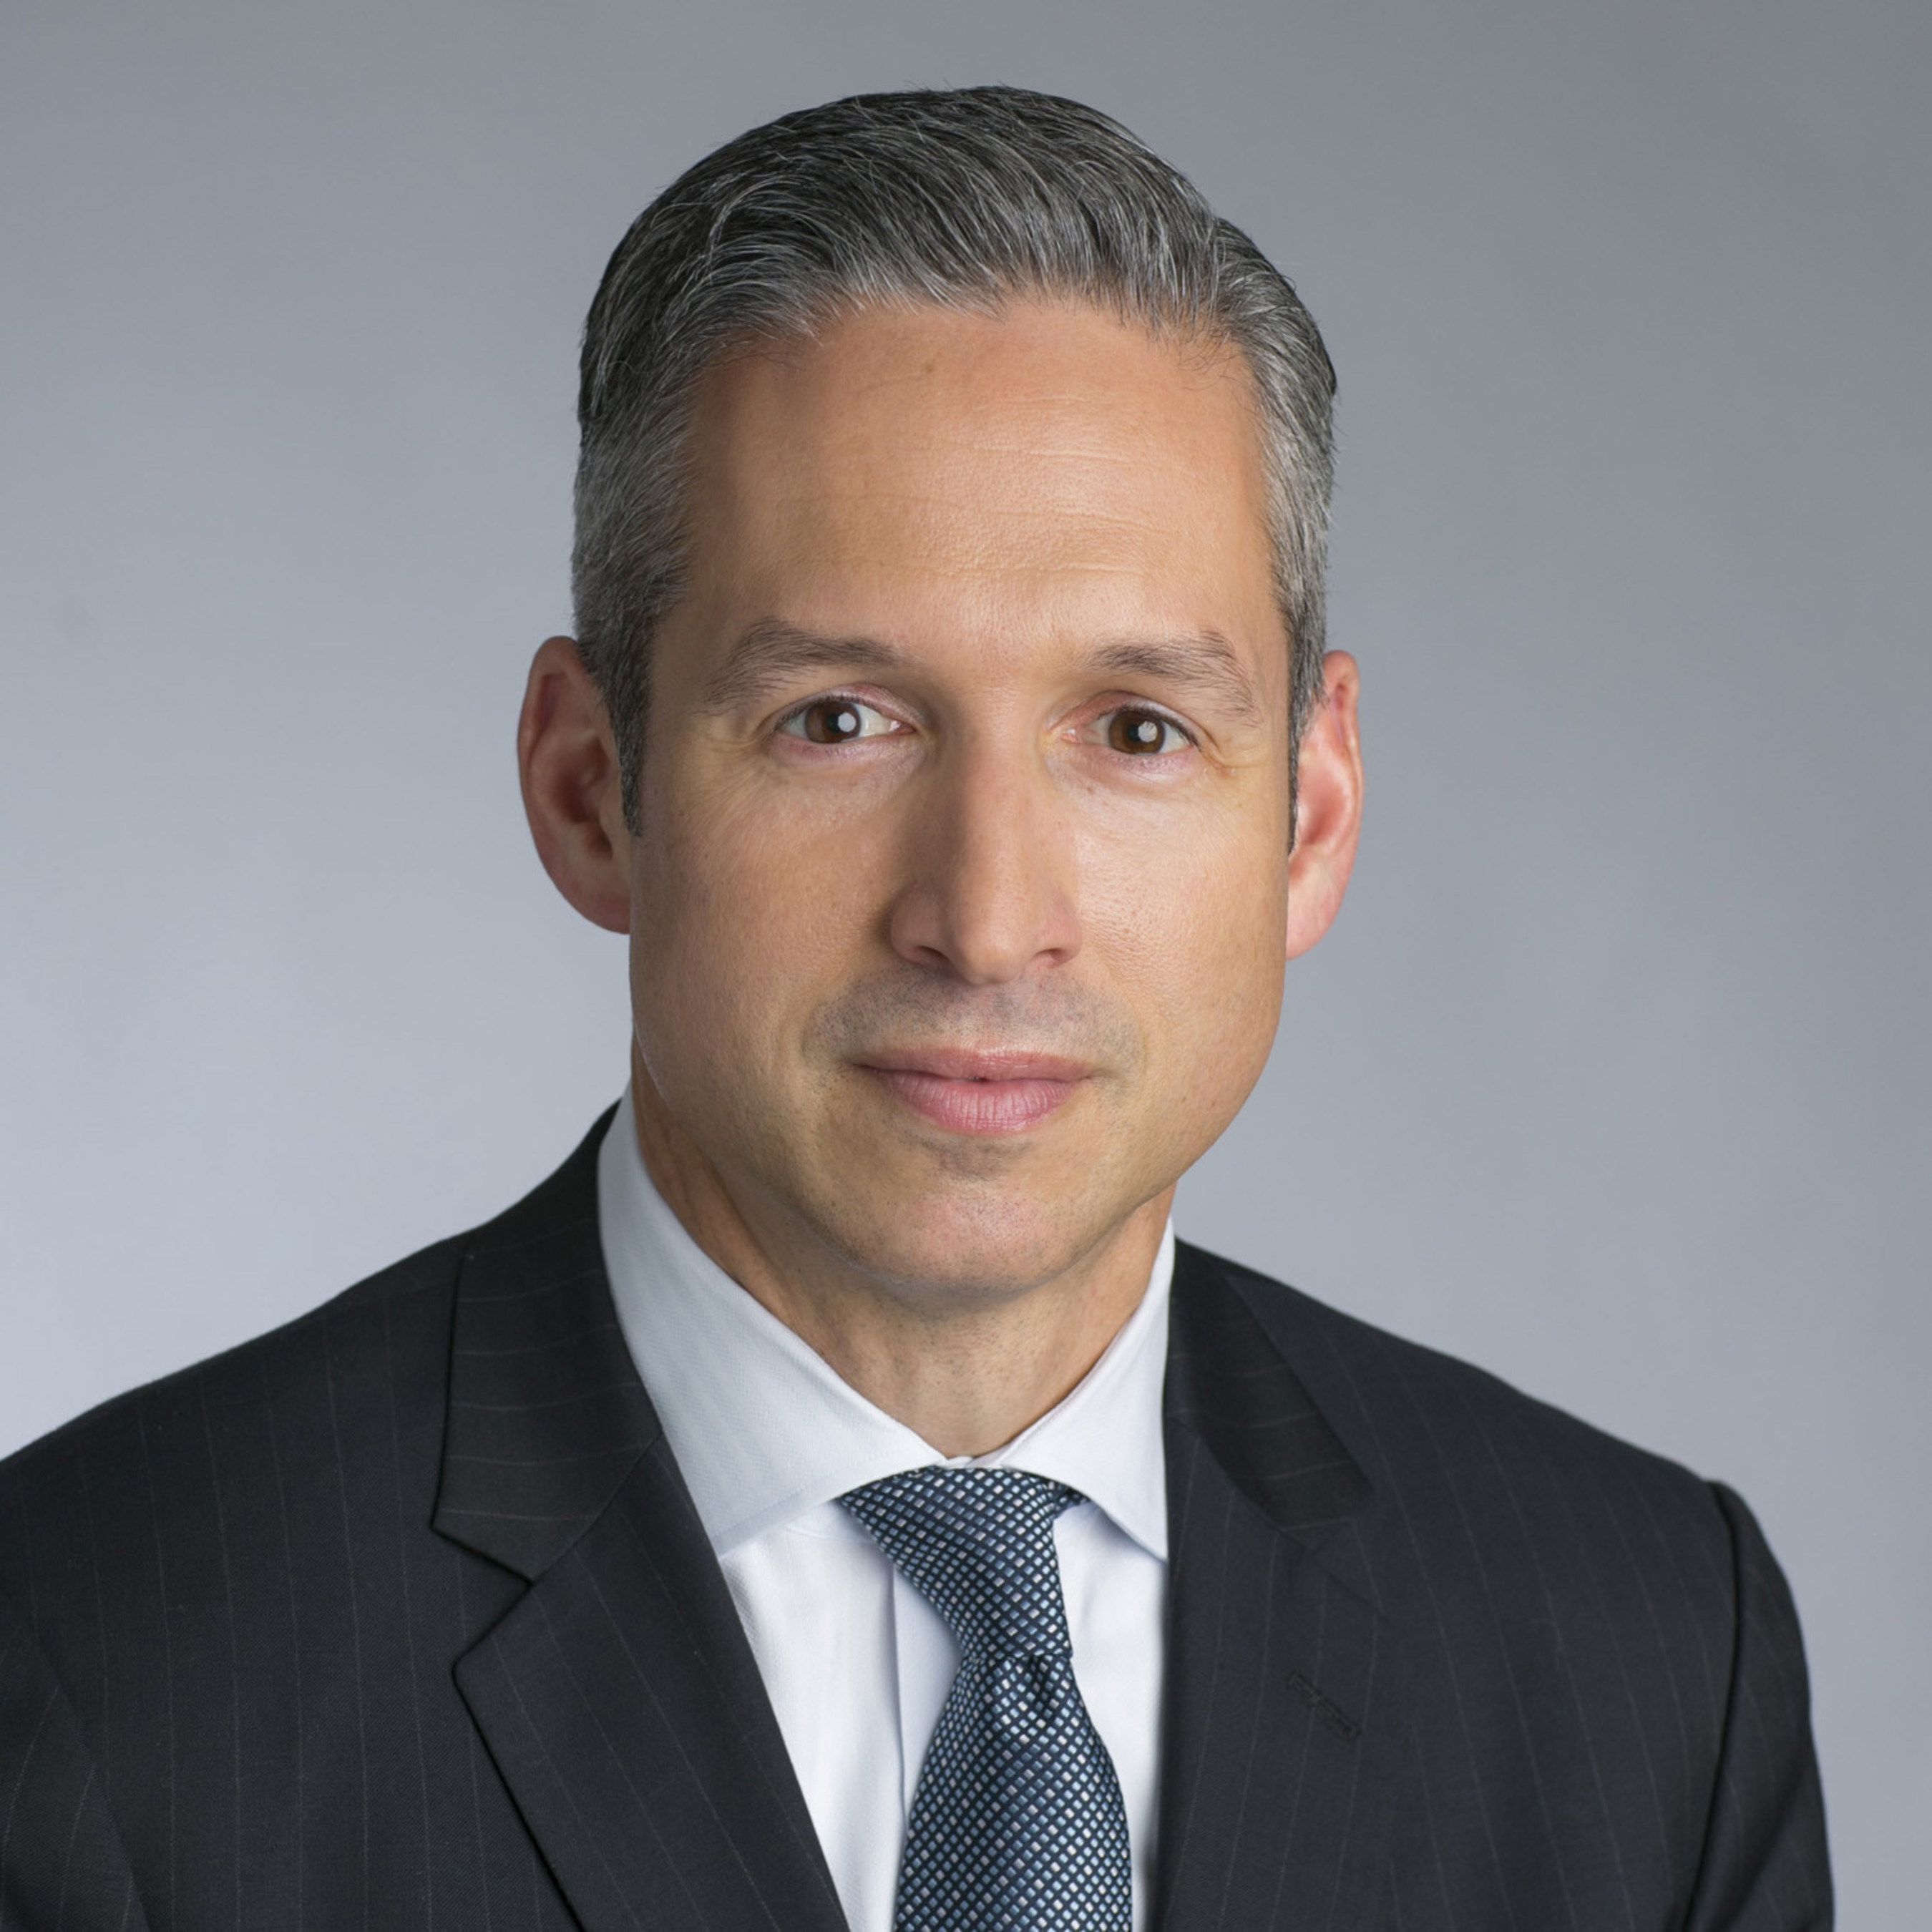 James Robinson named president, Americas Operations, for Astellas US LLC, with responsibility for the company's operations in North and South America, effective April 1, 2016.